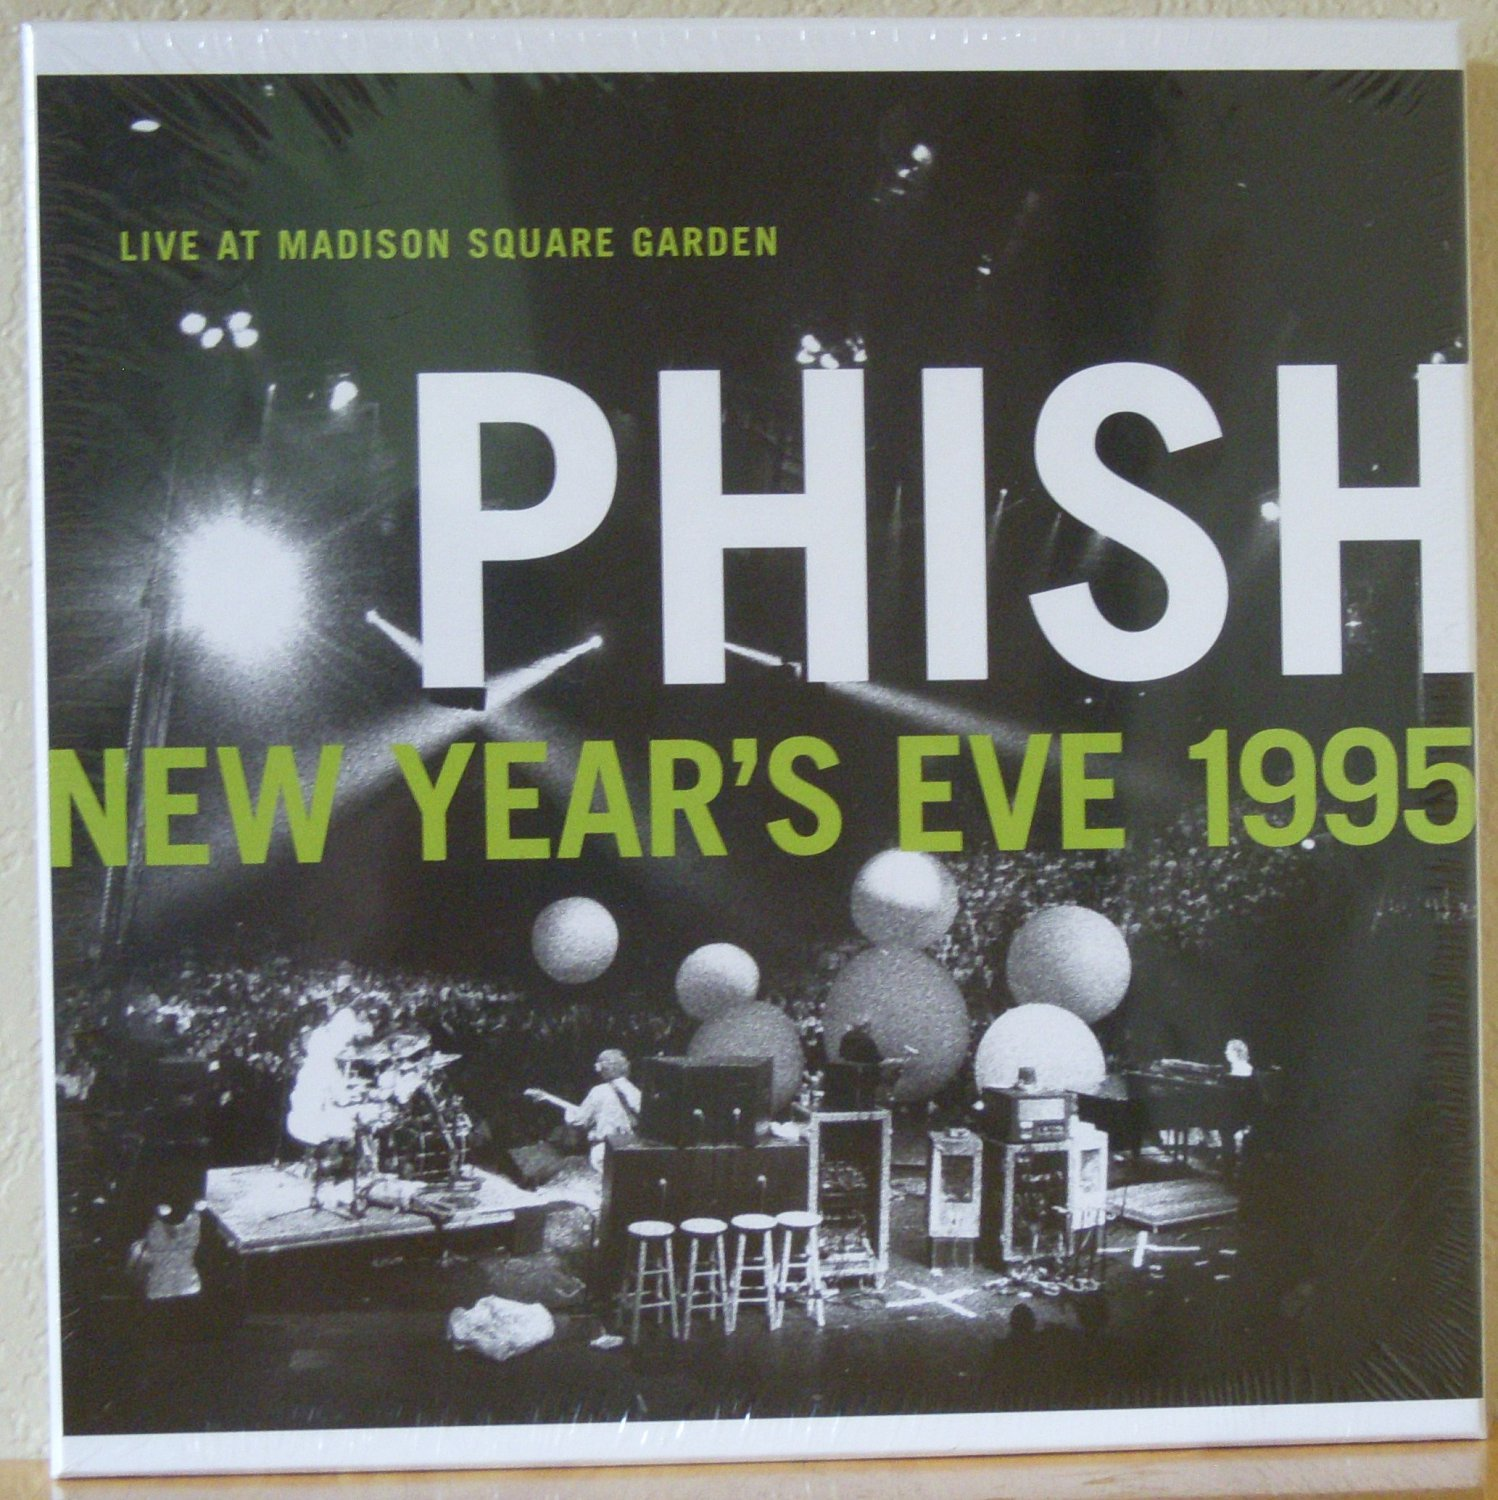 "PHISH New Year's Eve 1995 Live At Madison Square Garden 2015 US RSD 6 X 12"" Box Set LP"